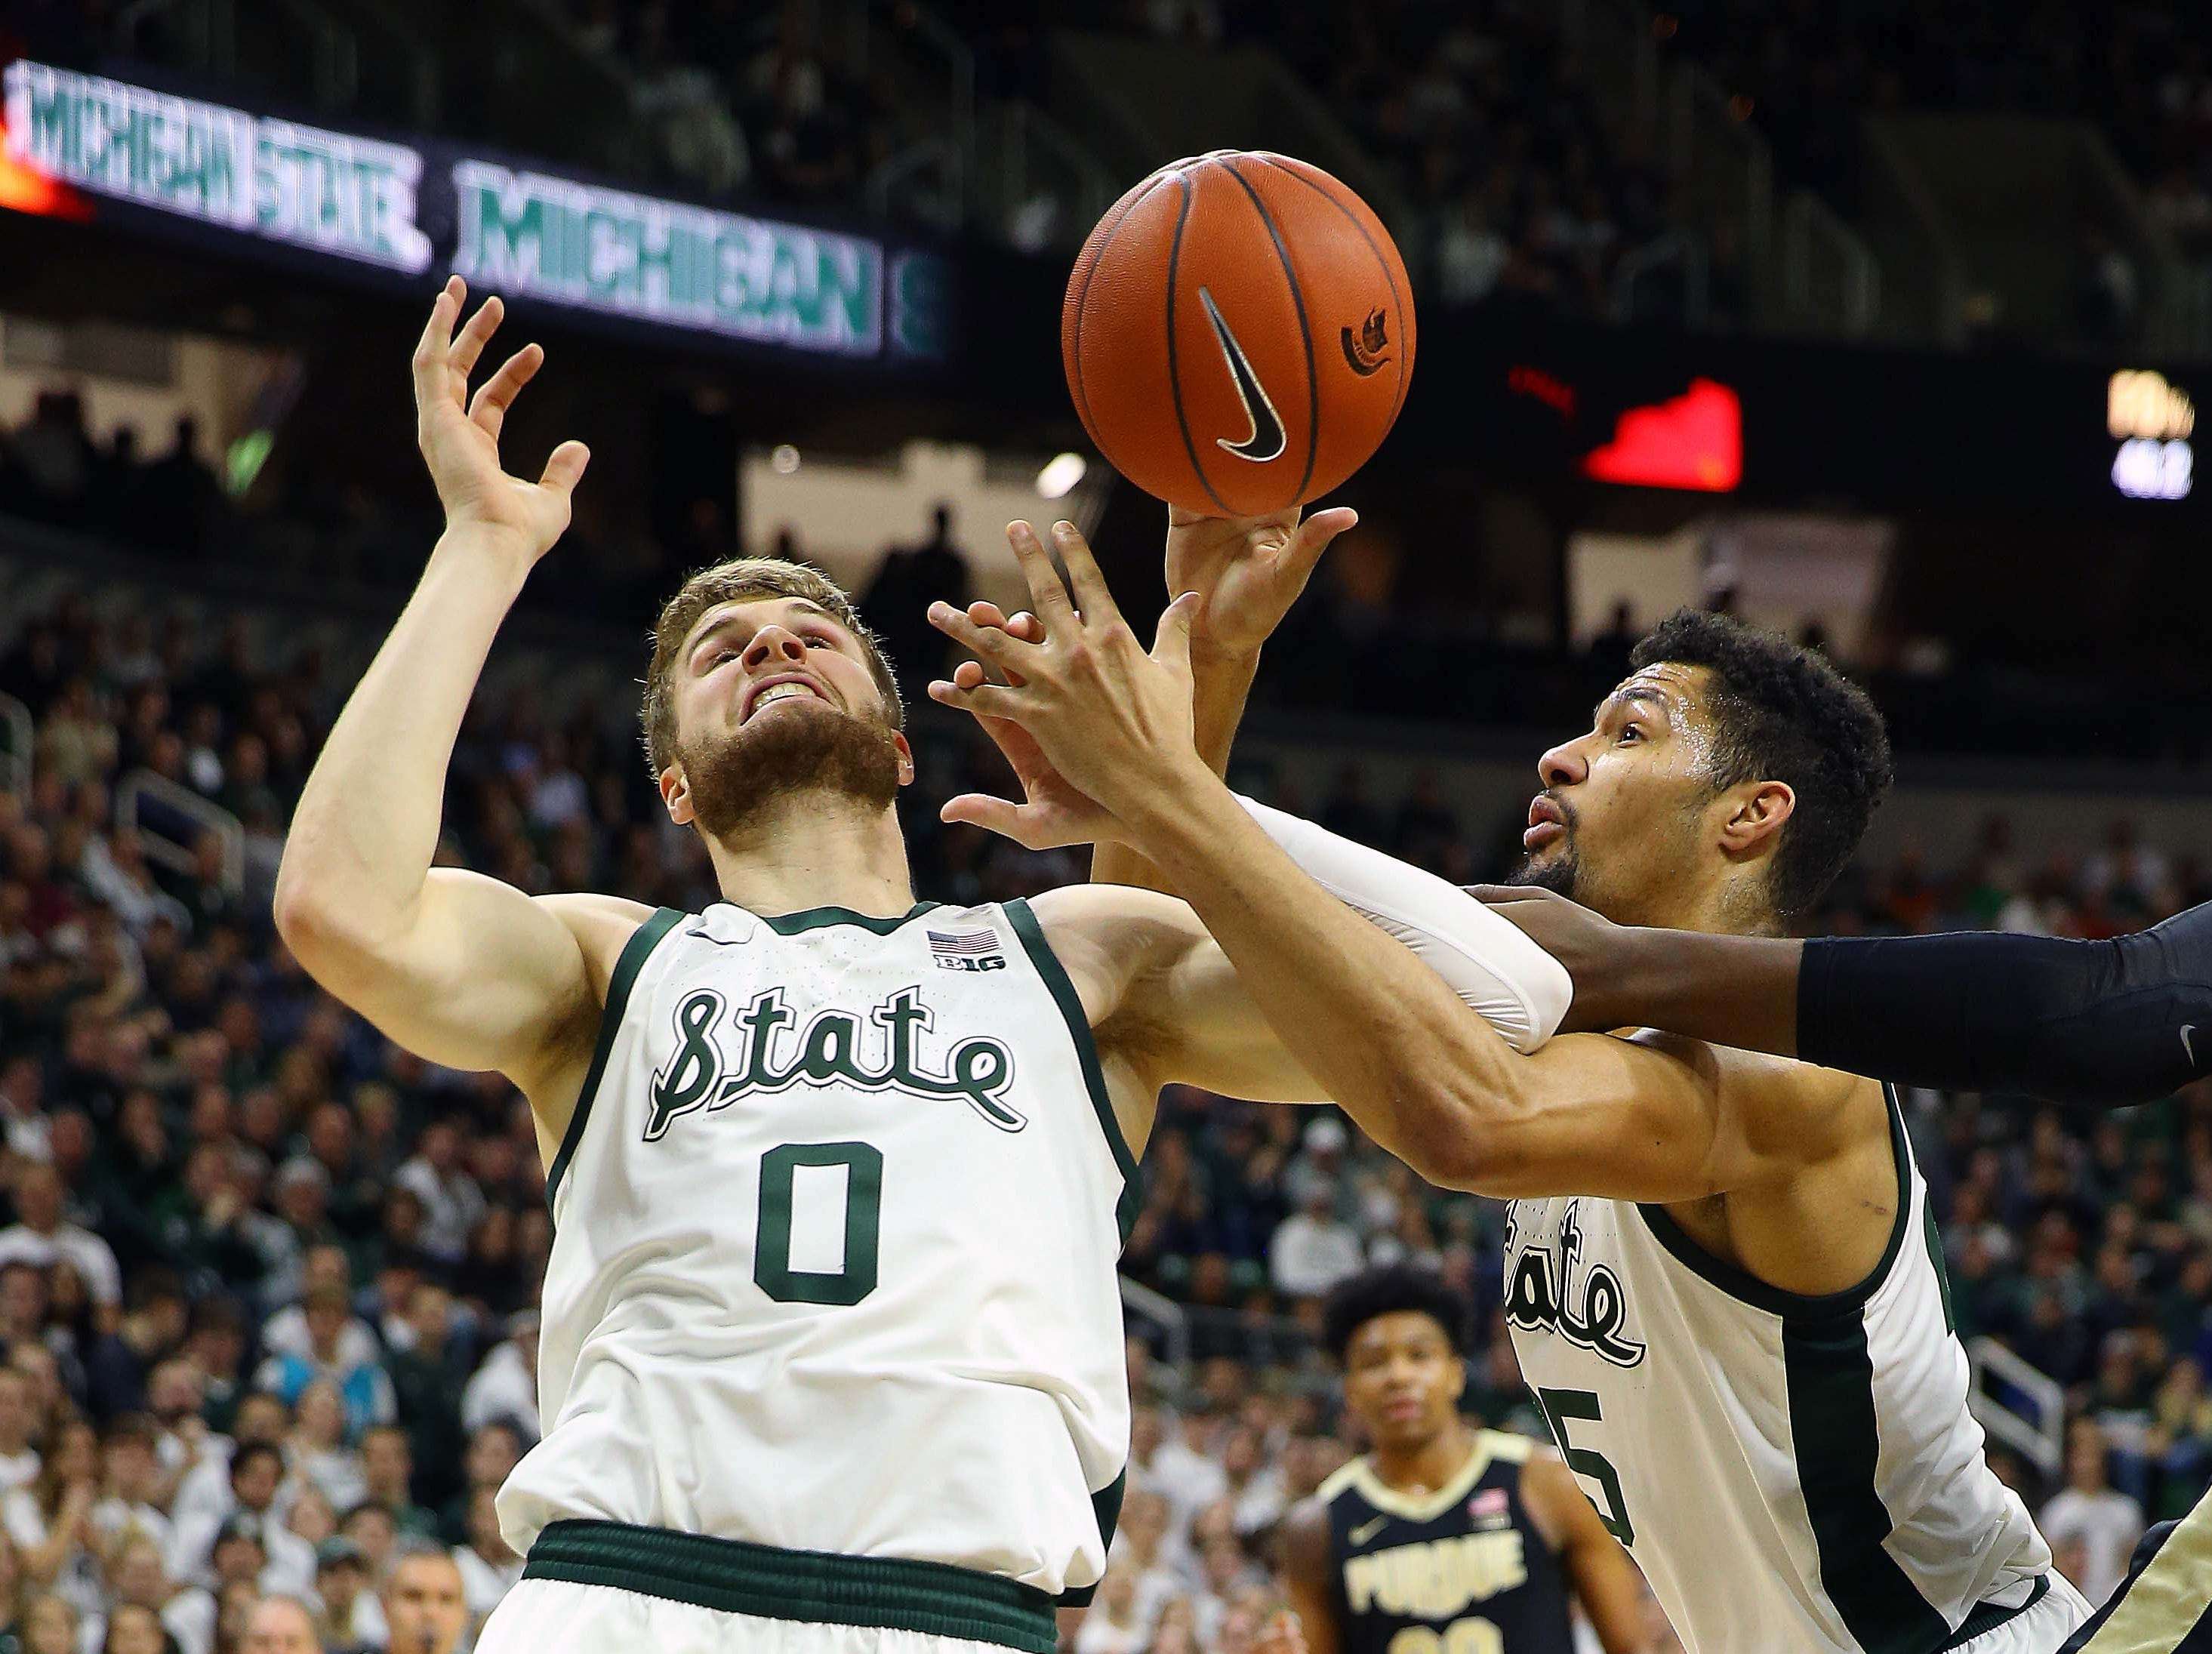 Jan 8, 2019; East Lansing, MI, USA; Michigan State Spartans forward Kyle Ahrens (0) and Michigan State Spartans forward Kenny Goins (25) fight for a loose ball during the first half of a game at the Breslin Center. Mandatory Credit: Mike Carter-USA TODAY Sports